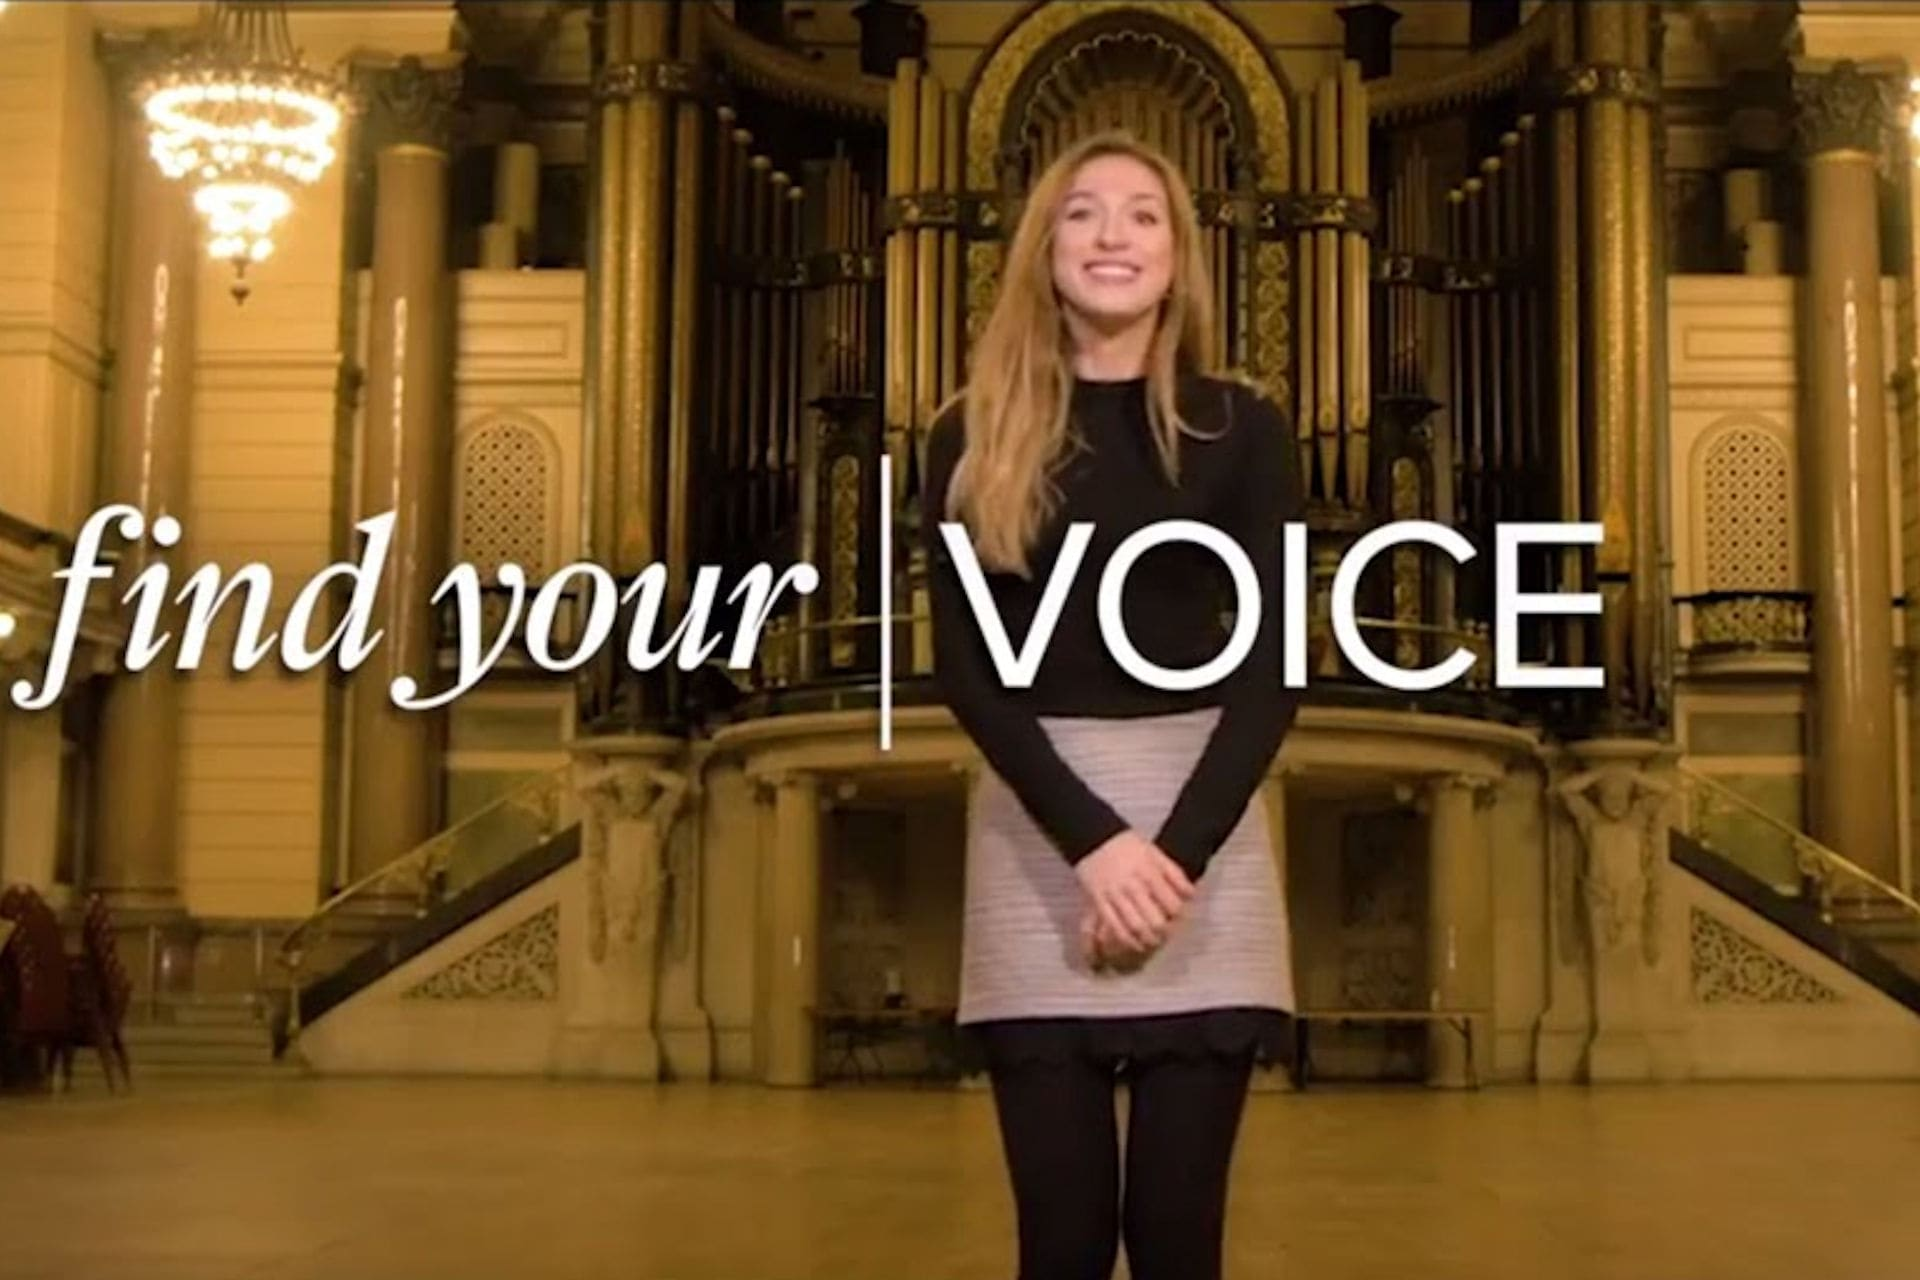 Student stood inside Cathedral building with words Find your VOICE overlaid